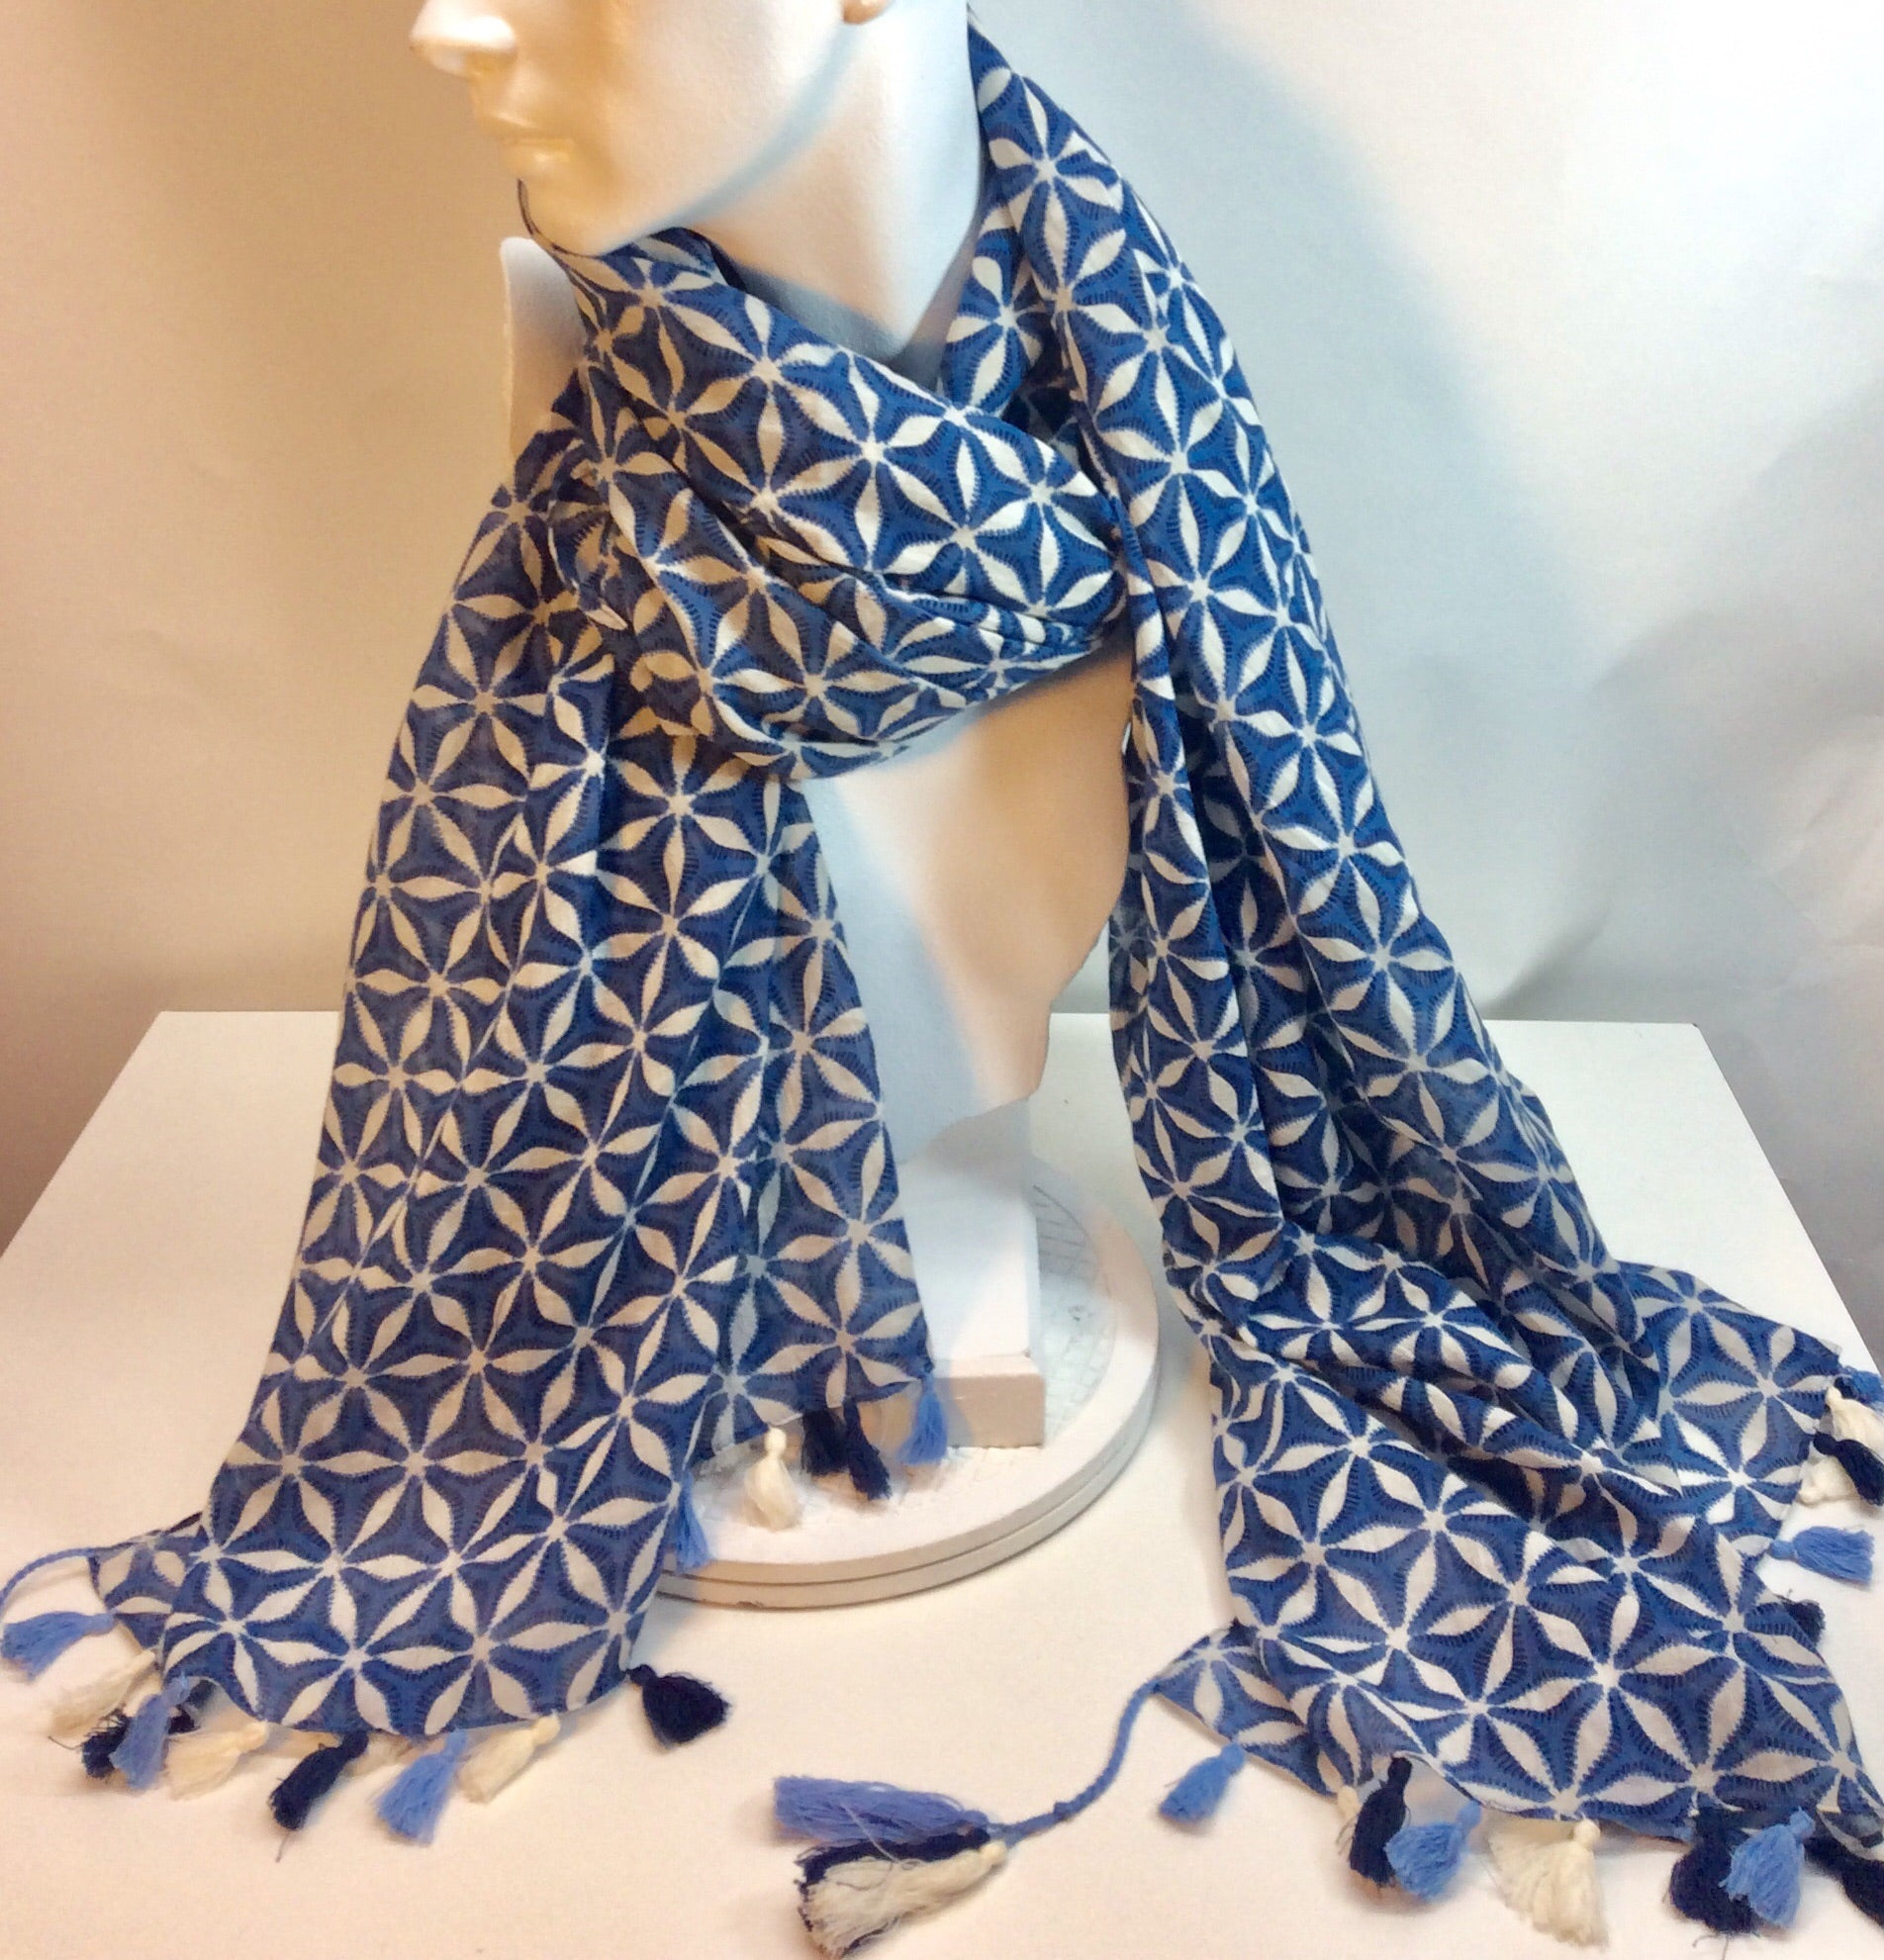 Blue and white printed cotton scarf with tassels